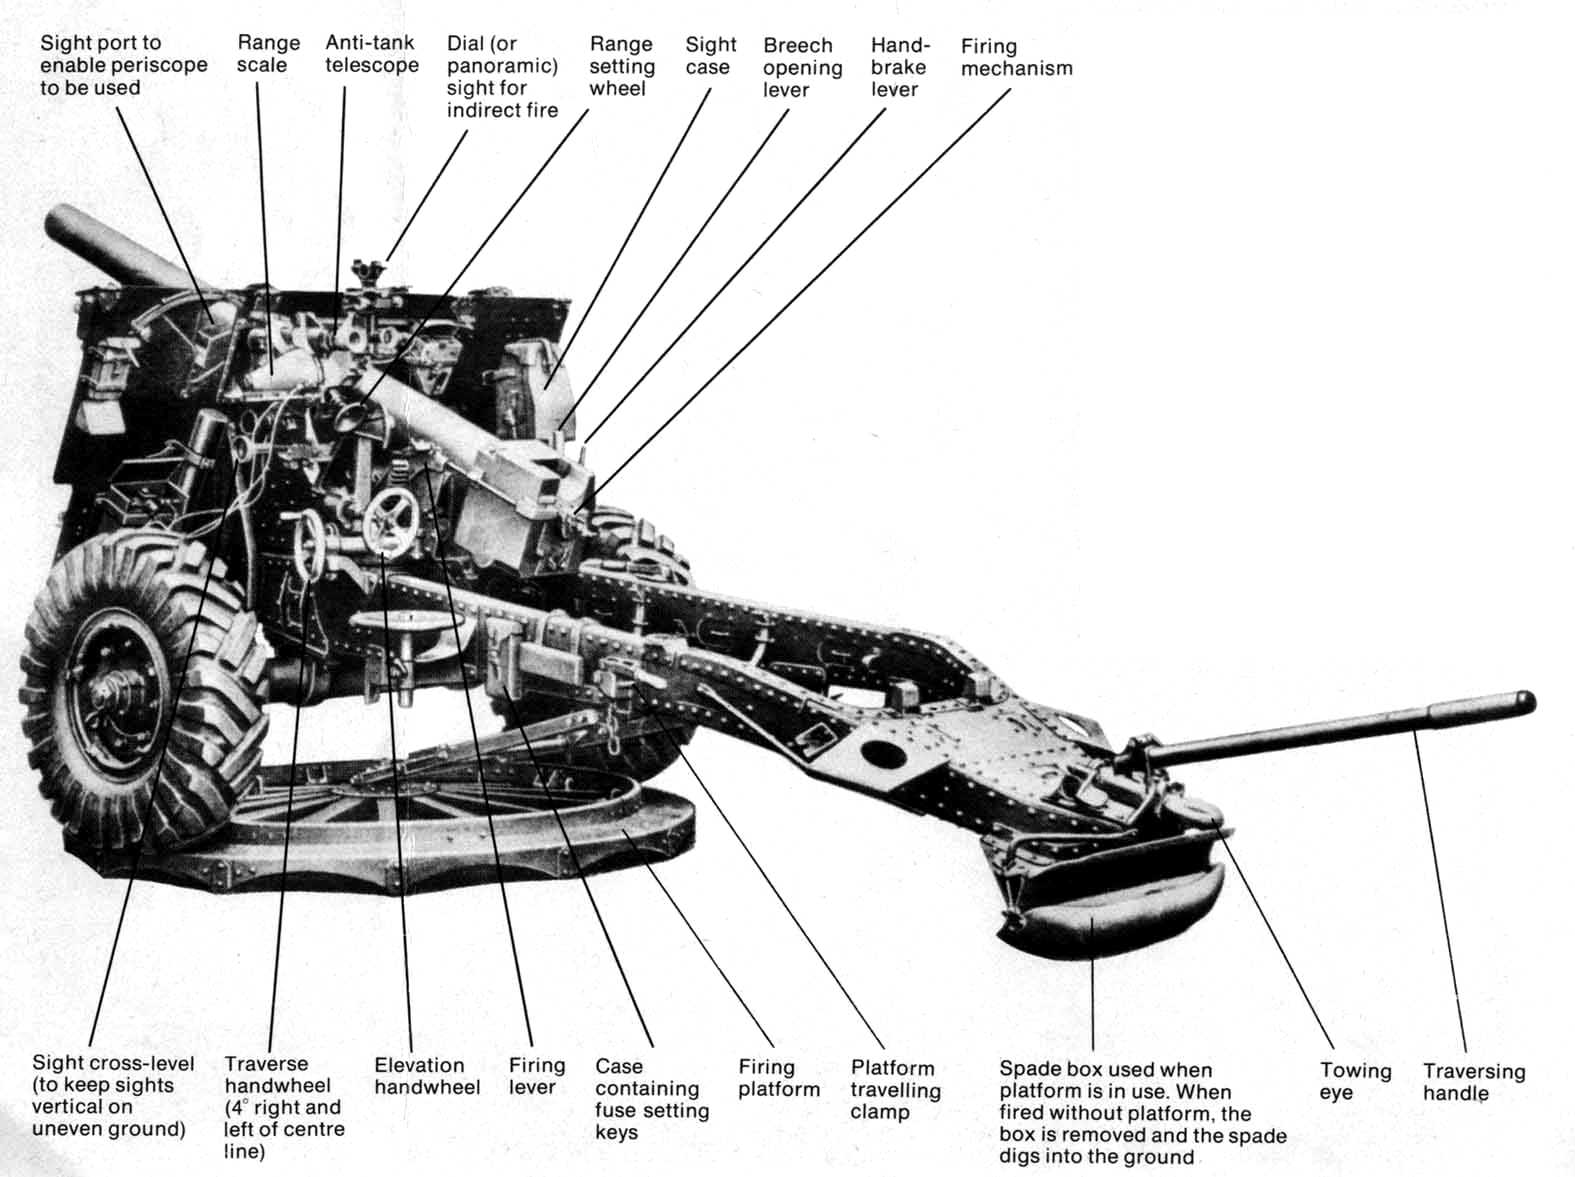 Diagram showing the different parts of a 25 pdr Field Gun